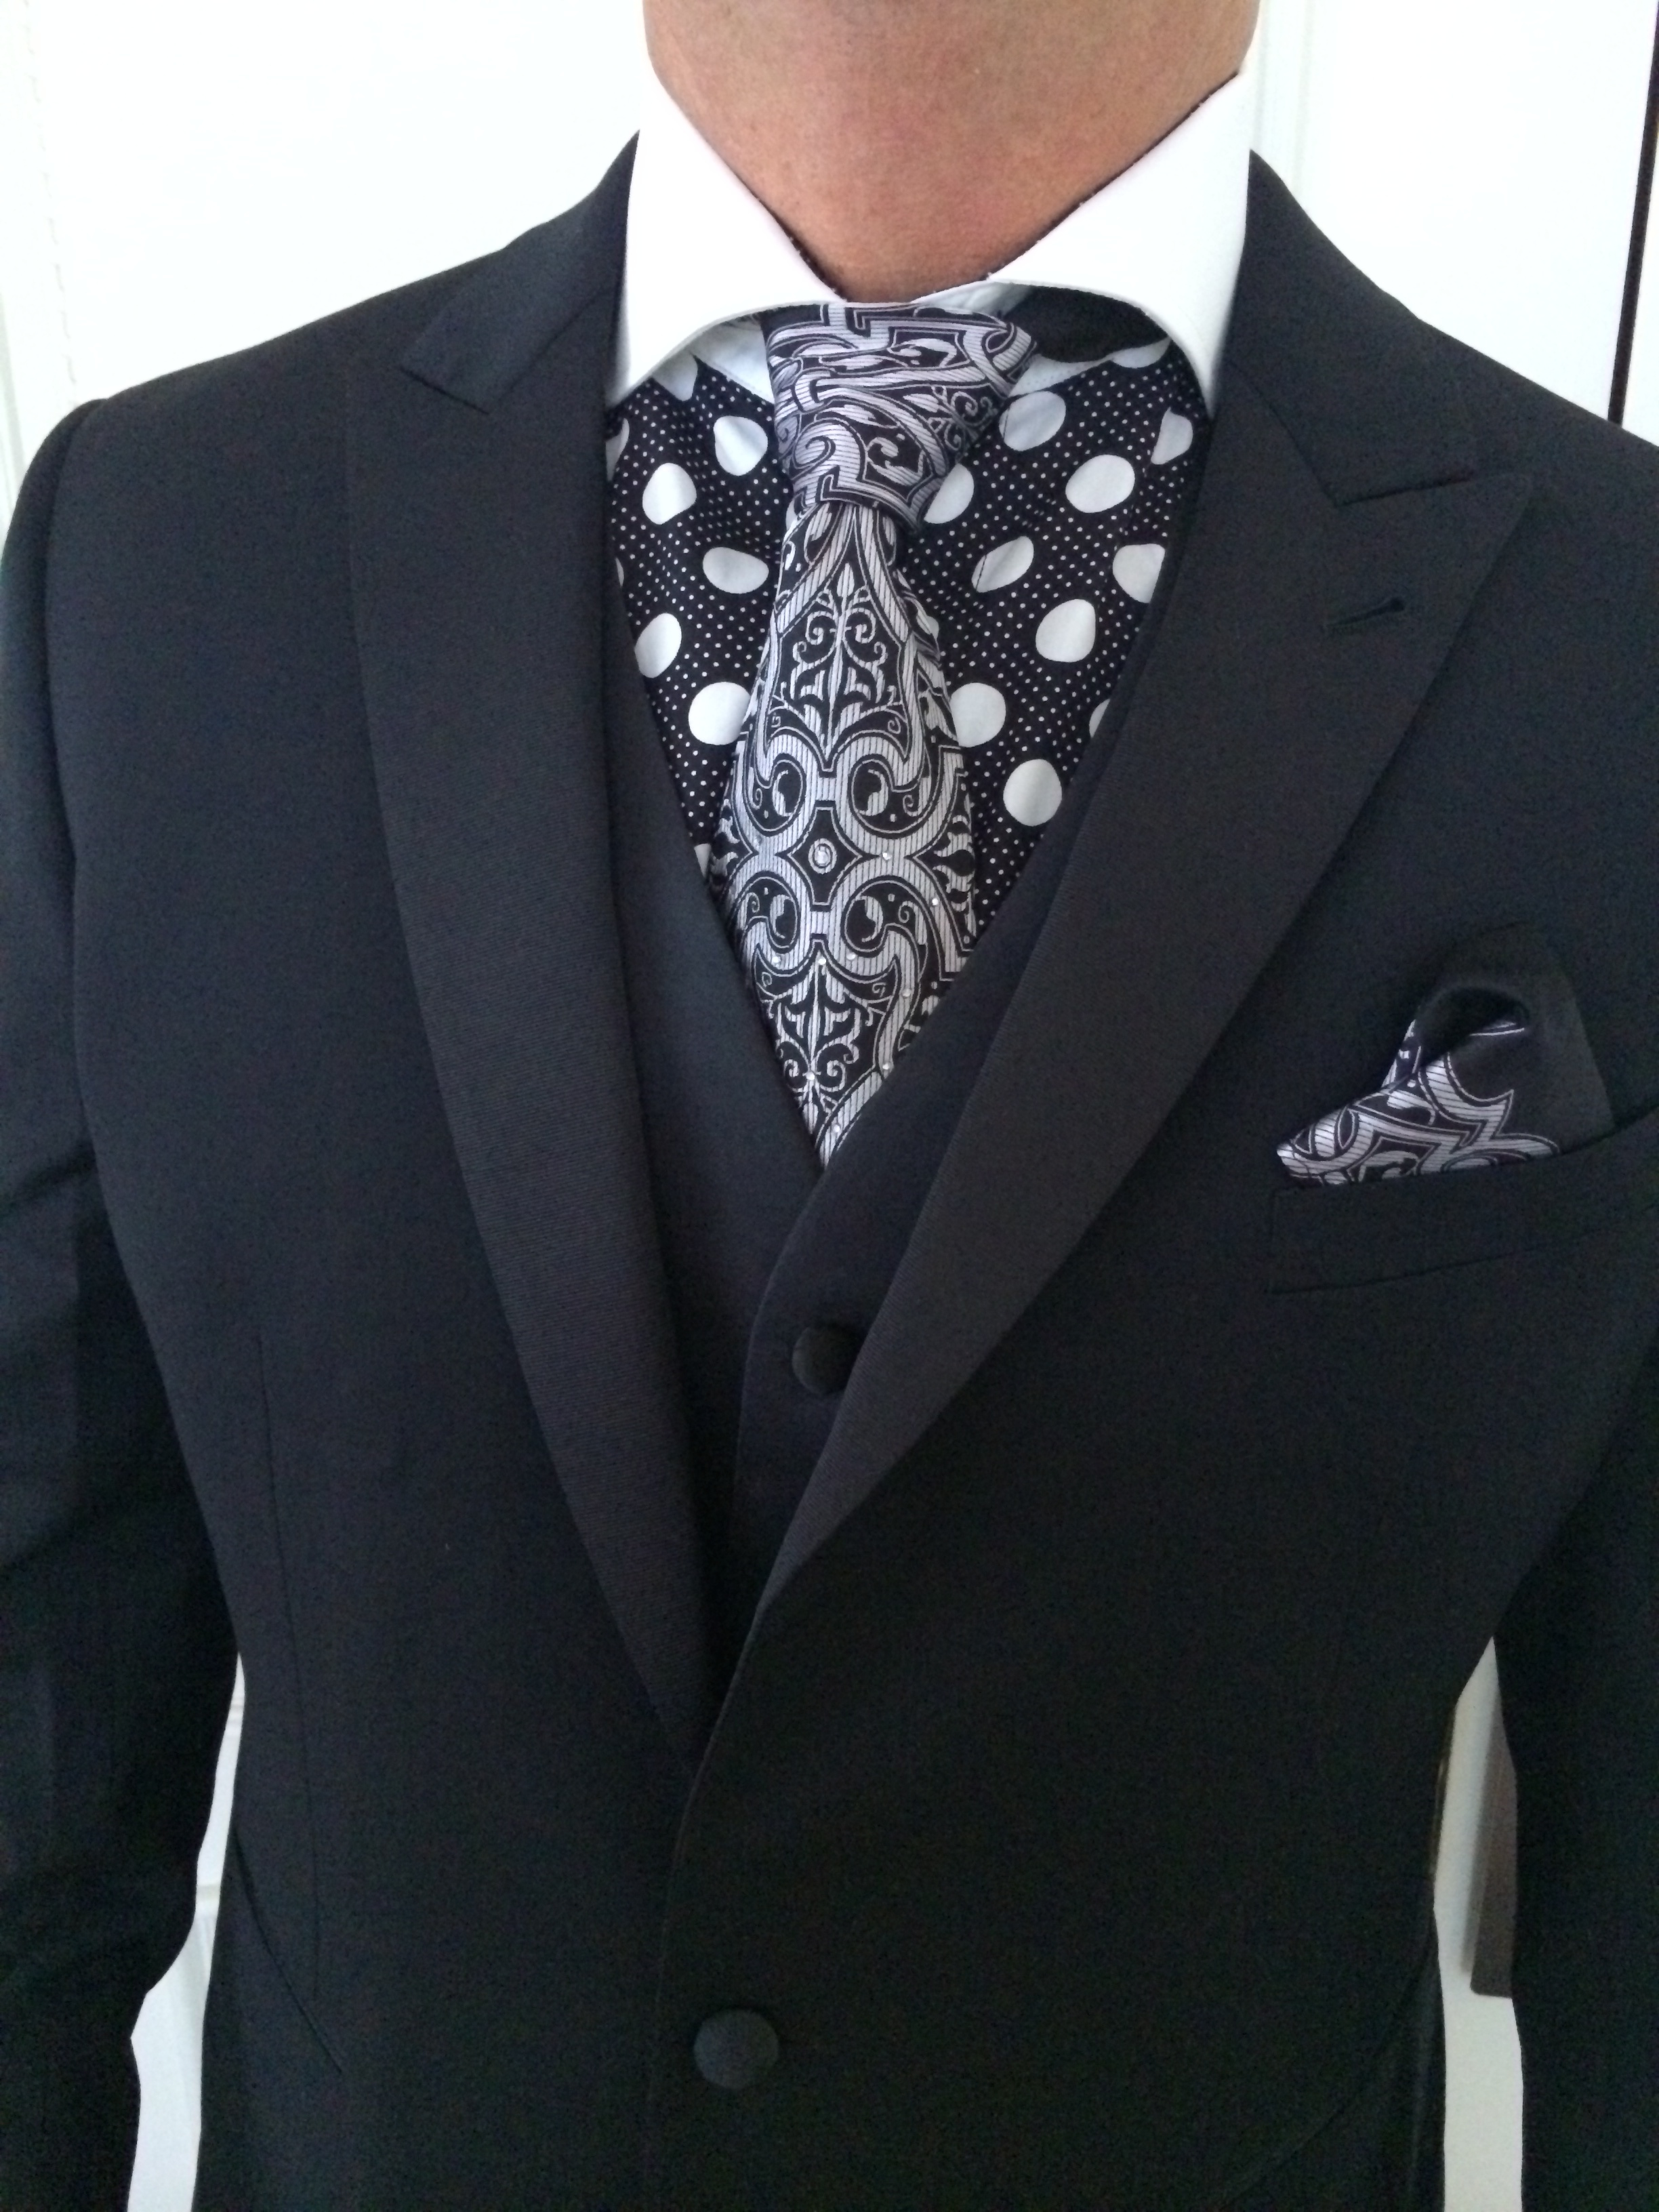 Another custom cut for the groom who wants to make a statement. Alan Bridges worked with a tailor and designer to create a combination that shouldn't have worked together, but totally did. September 2014.   Las Vegas Wedding Planner Andrea Eppolito    Photo by Andrea Eppolito.